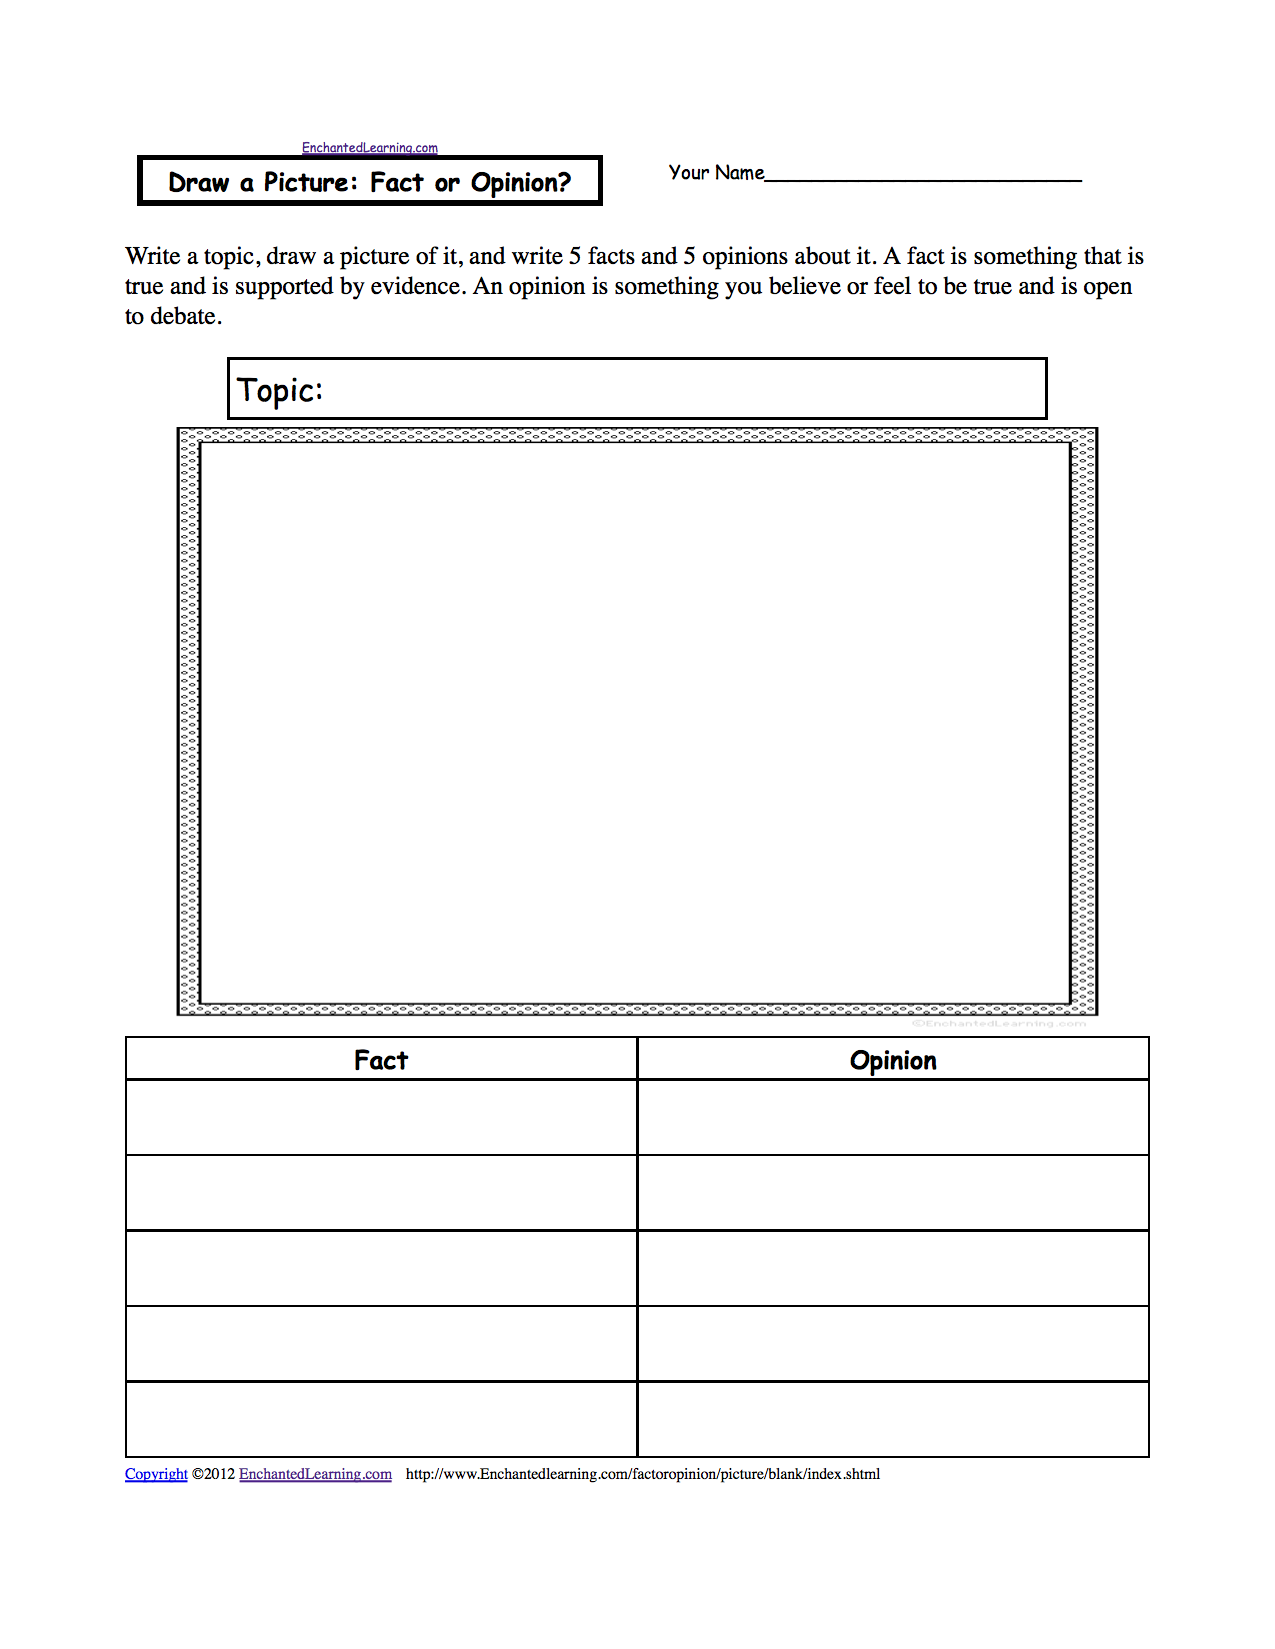 Worksheets Opinion Worksheets fact or opinion worksheets to print enchantedlearning com draw a picture opinion